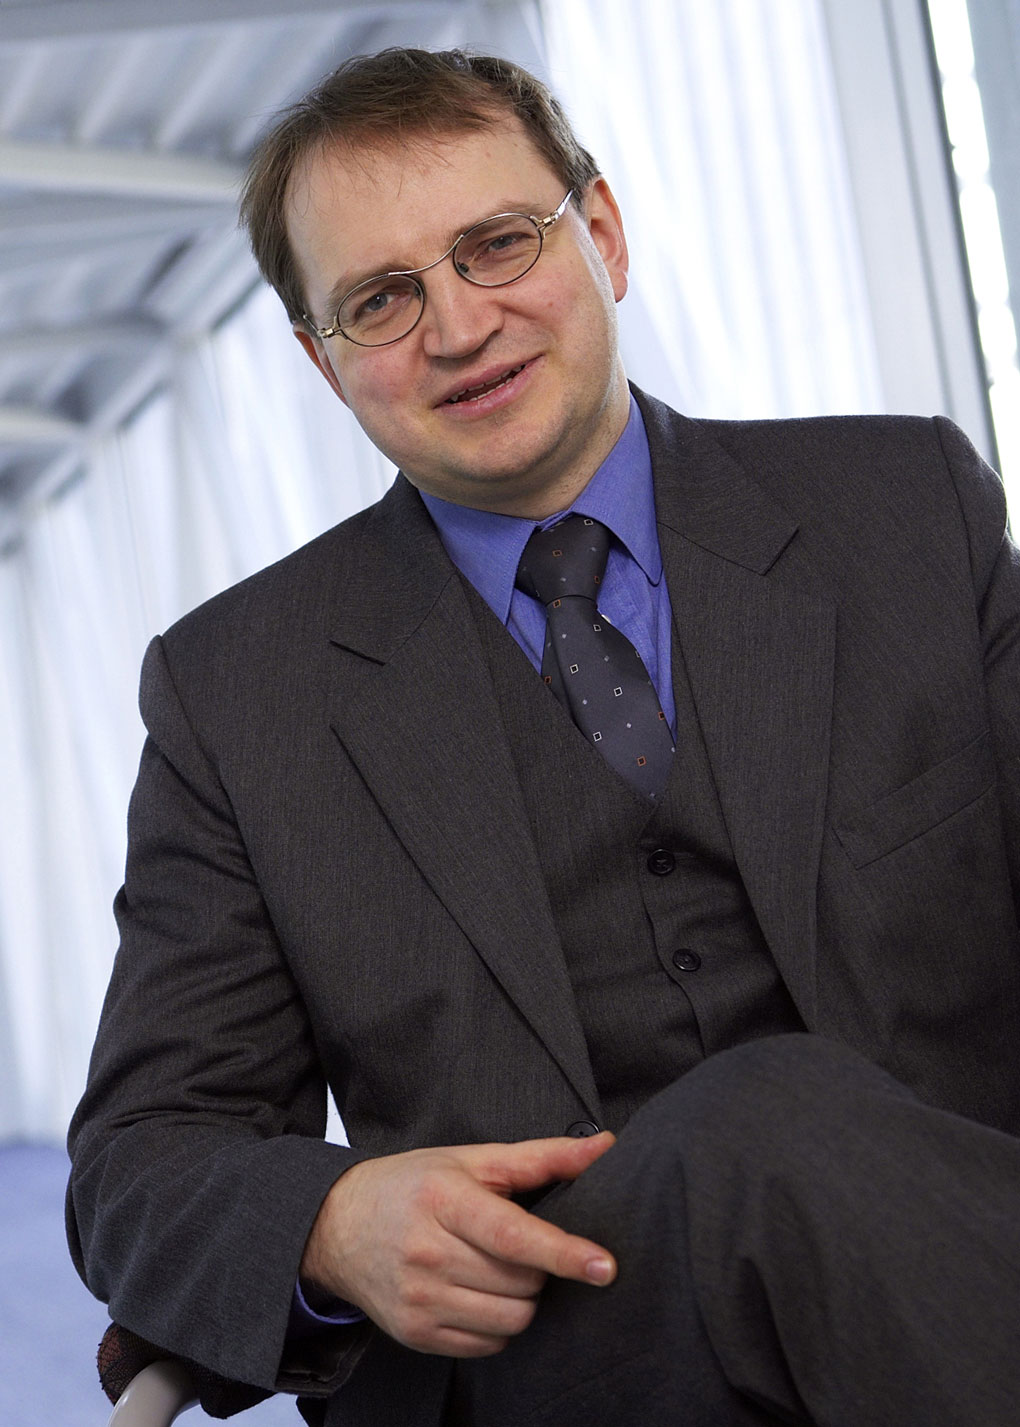 Bernhard Grill, leader of Fraunhofer Institute's audio and multimedia division and a creator of the MP3 and AAC audio compression formats.